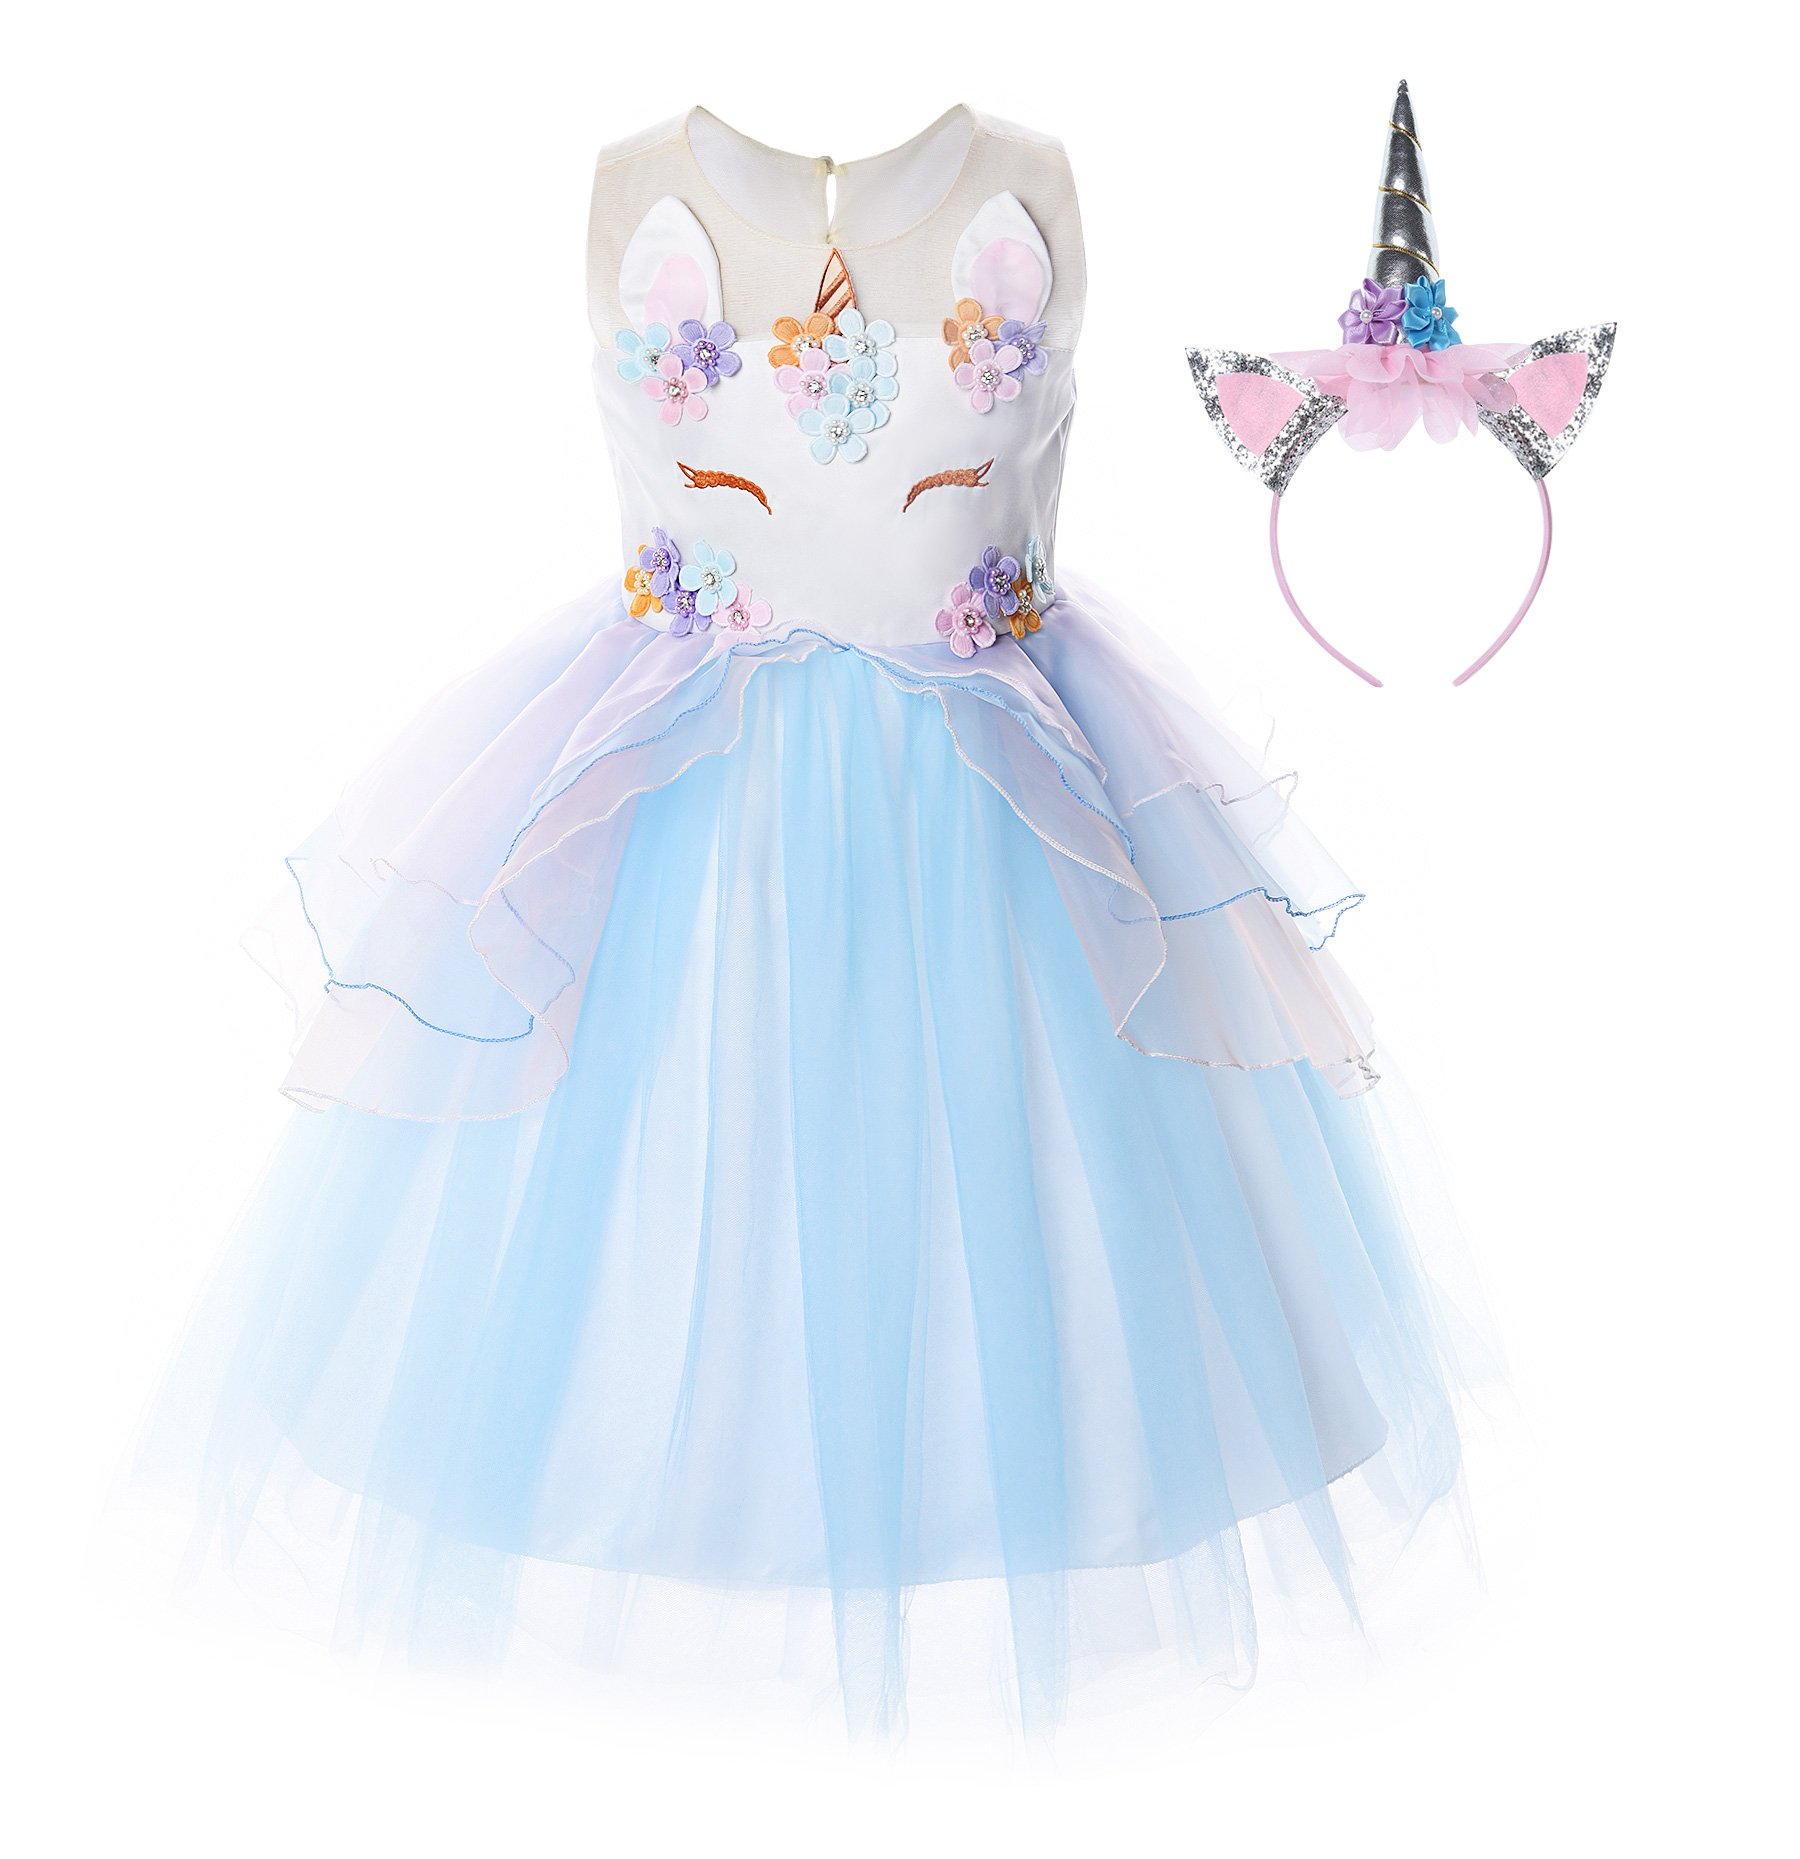 JerrisApparel Flower Girls Unicorn Costume Pageant Princess Party Dress 3